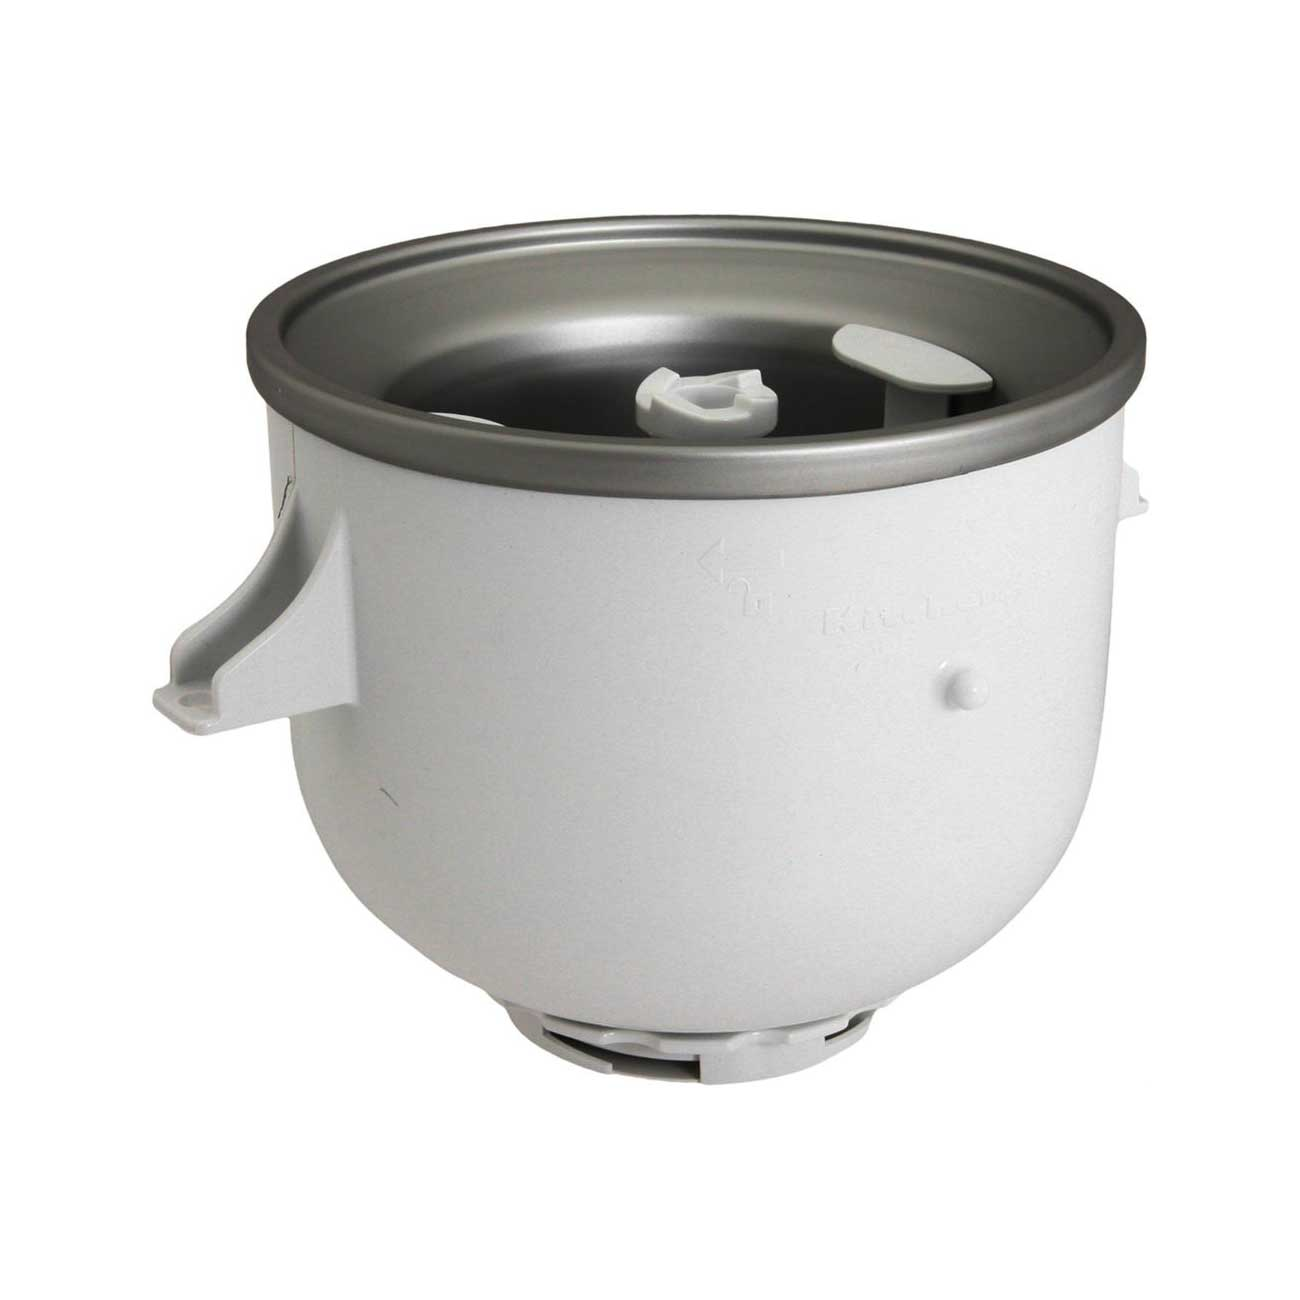 Kitchen Aid Ice Cream Bowl Review